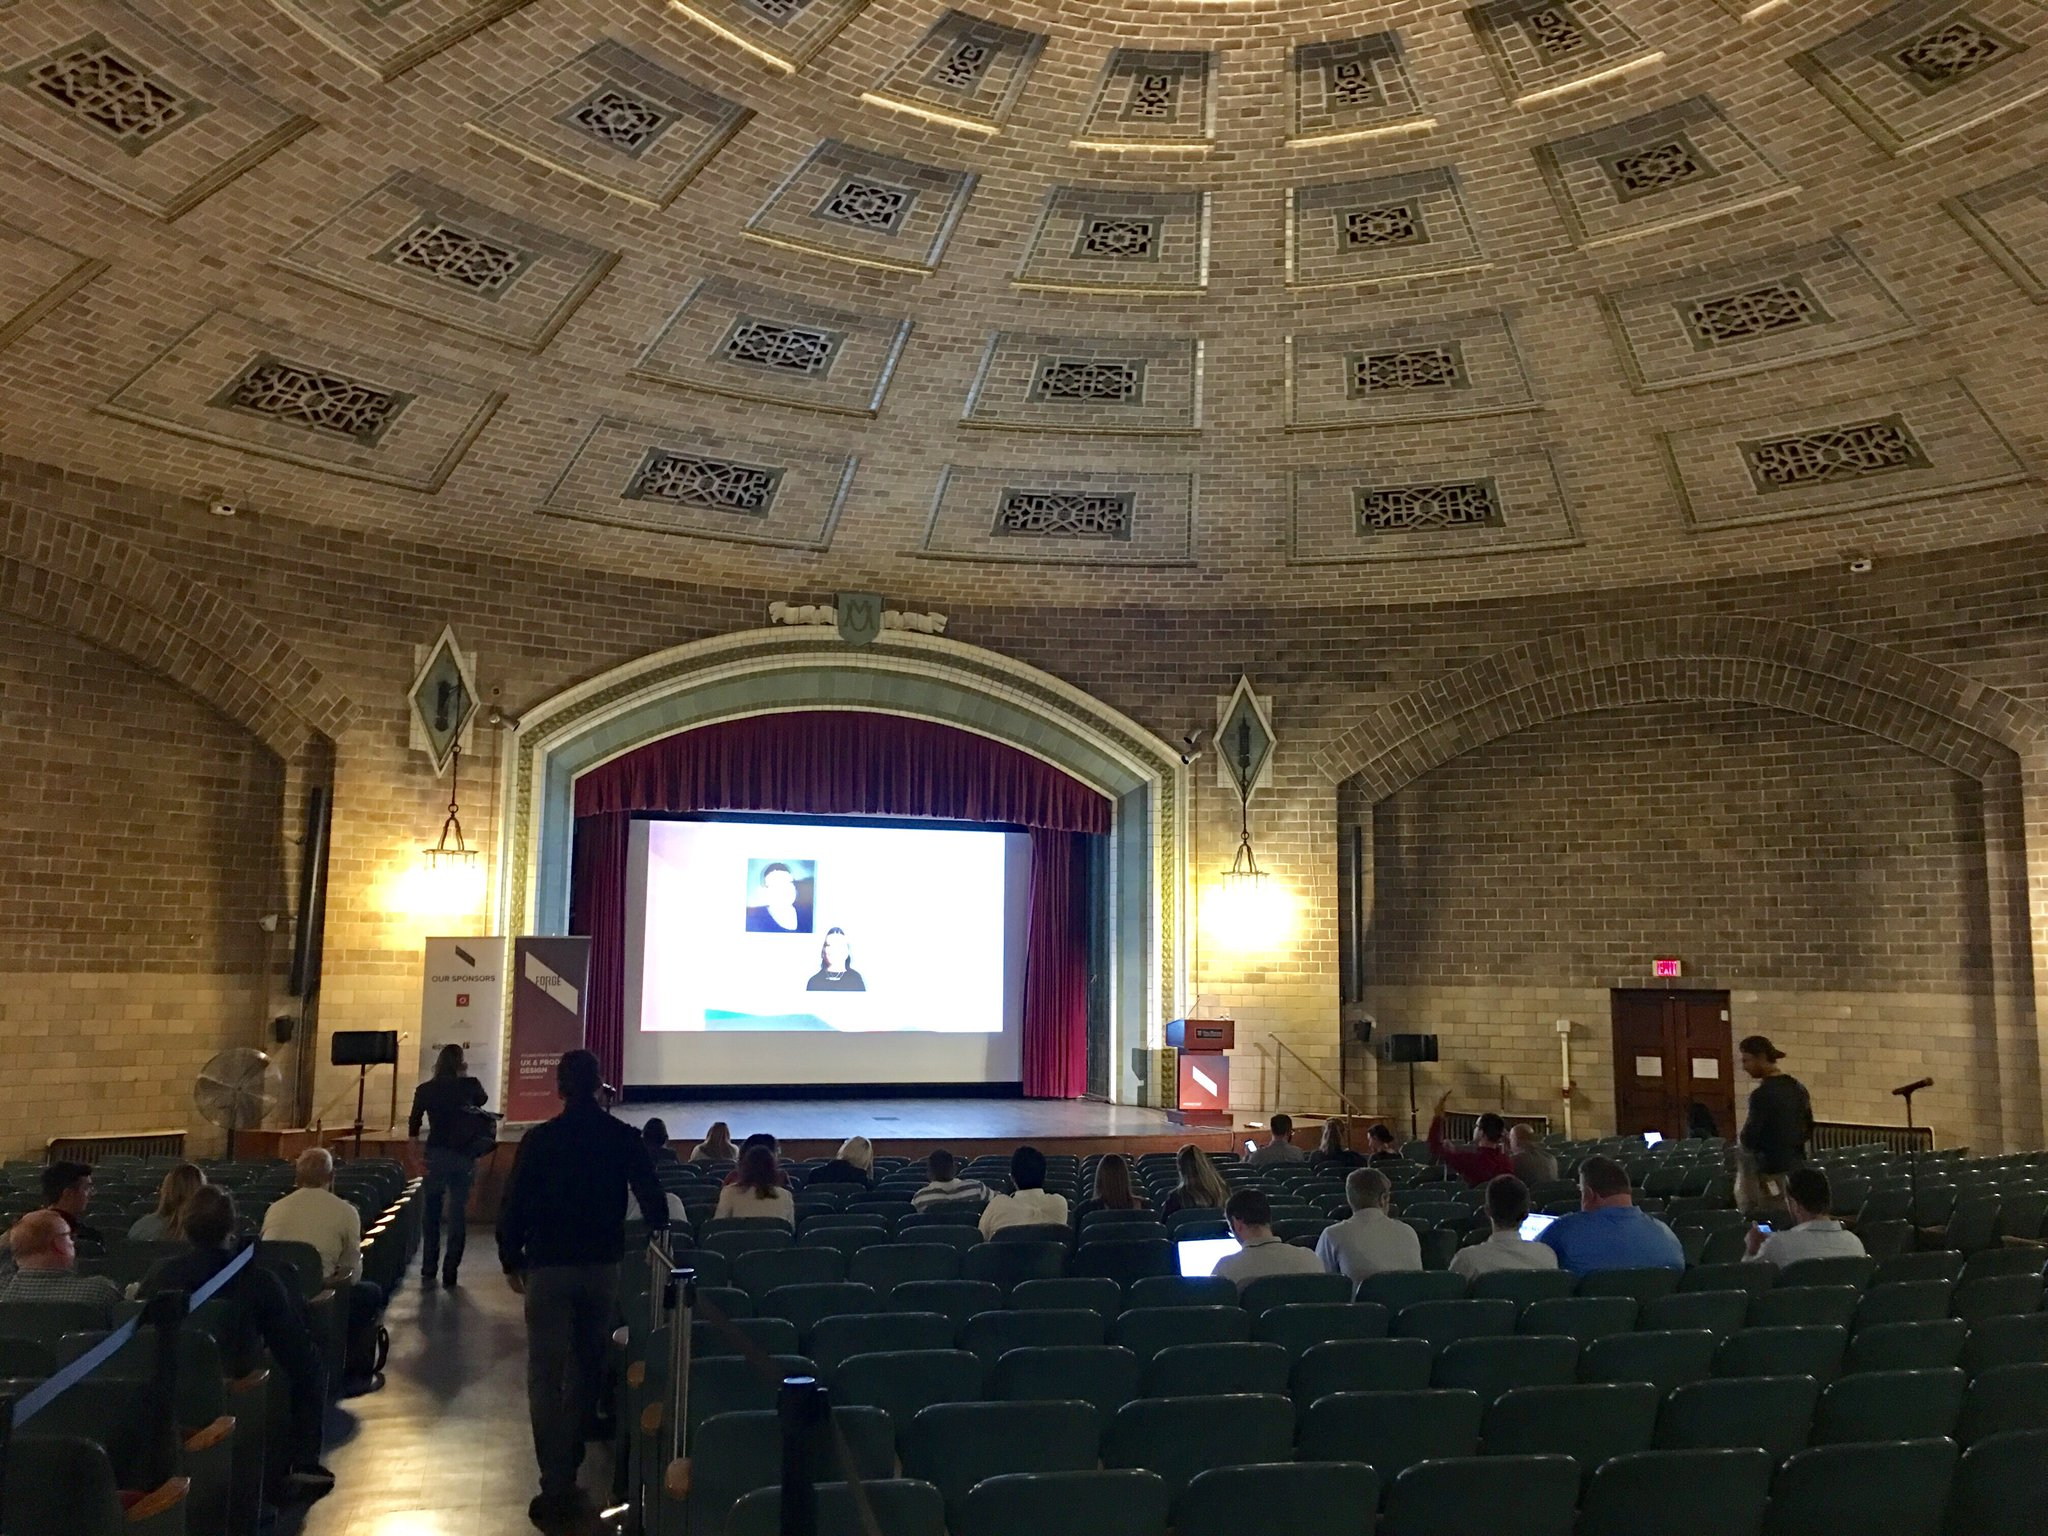 #forgeconf is about to start in a very nice venue: https://t.co/BccyVnCrXG